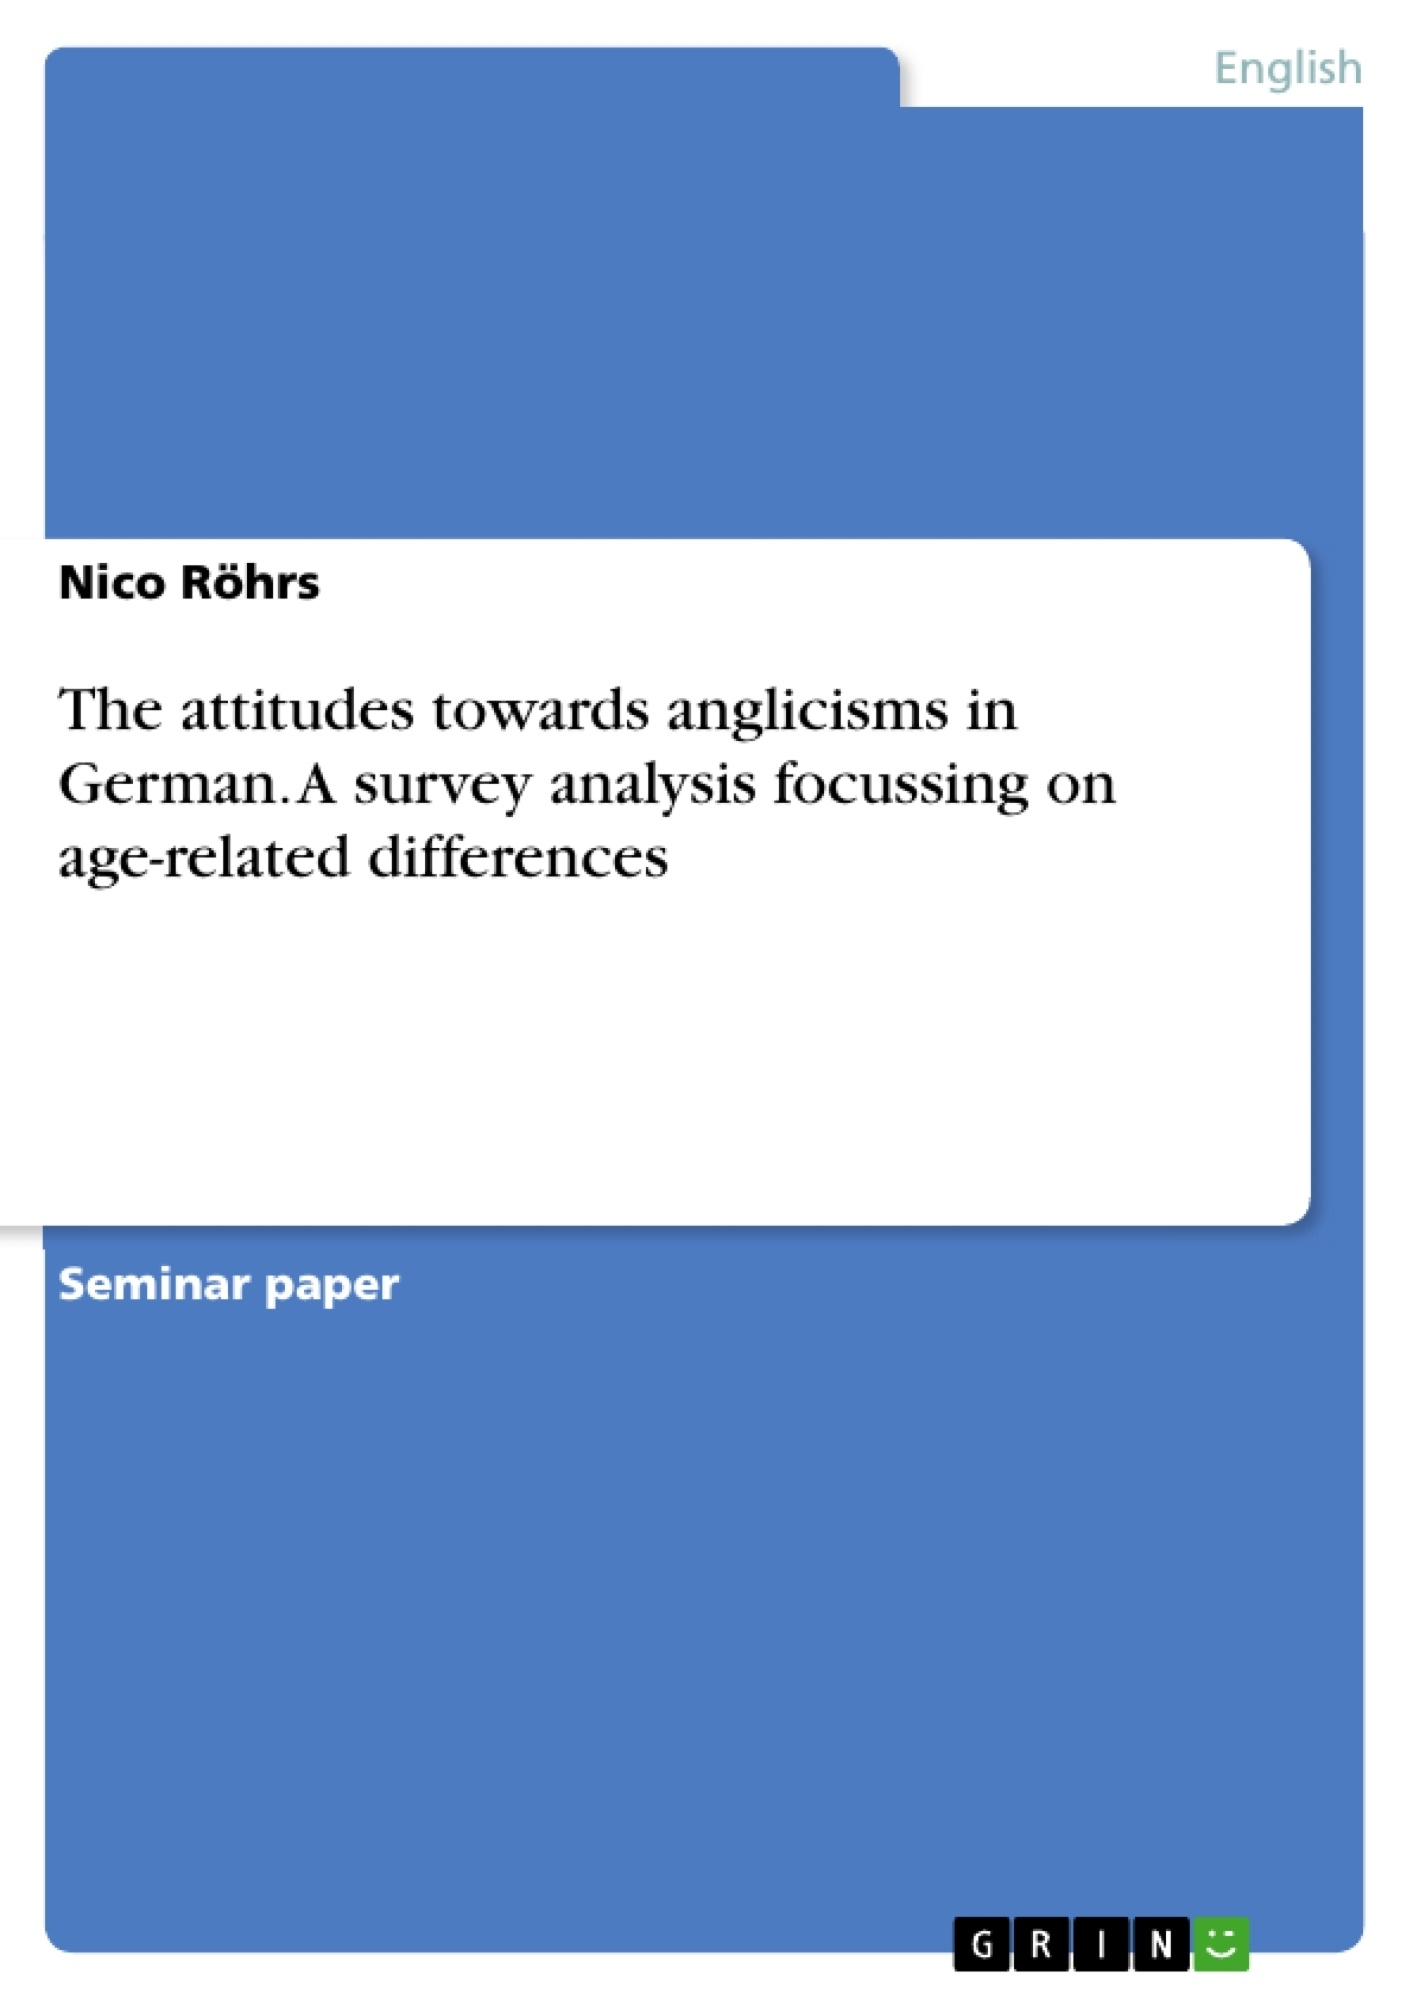 Title: The attitudes towards anglicisms in German. A survey analysis focussing on age-related differences